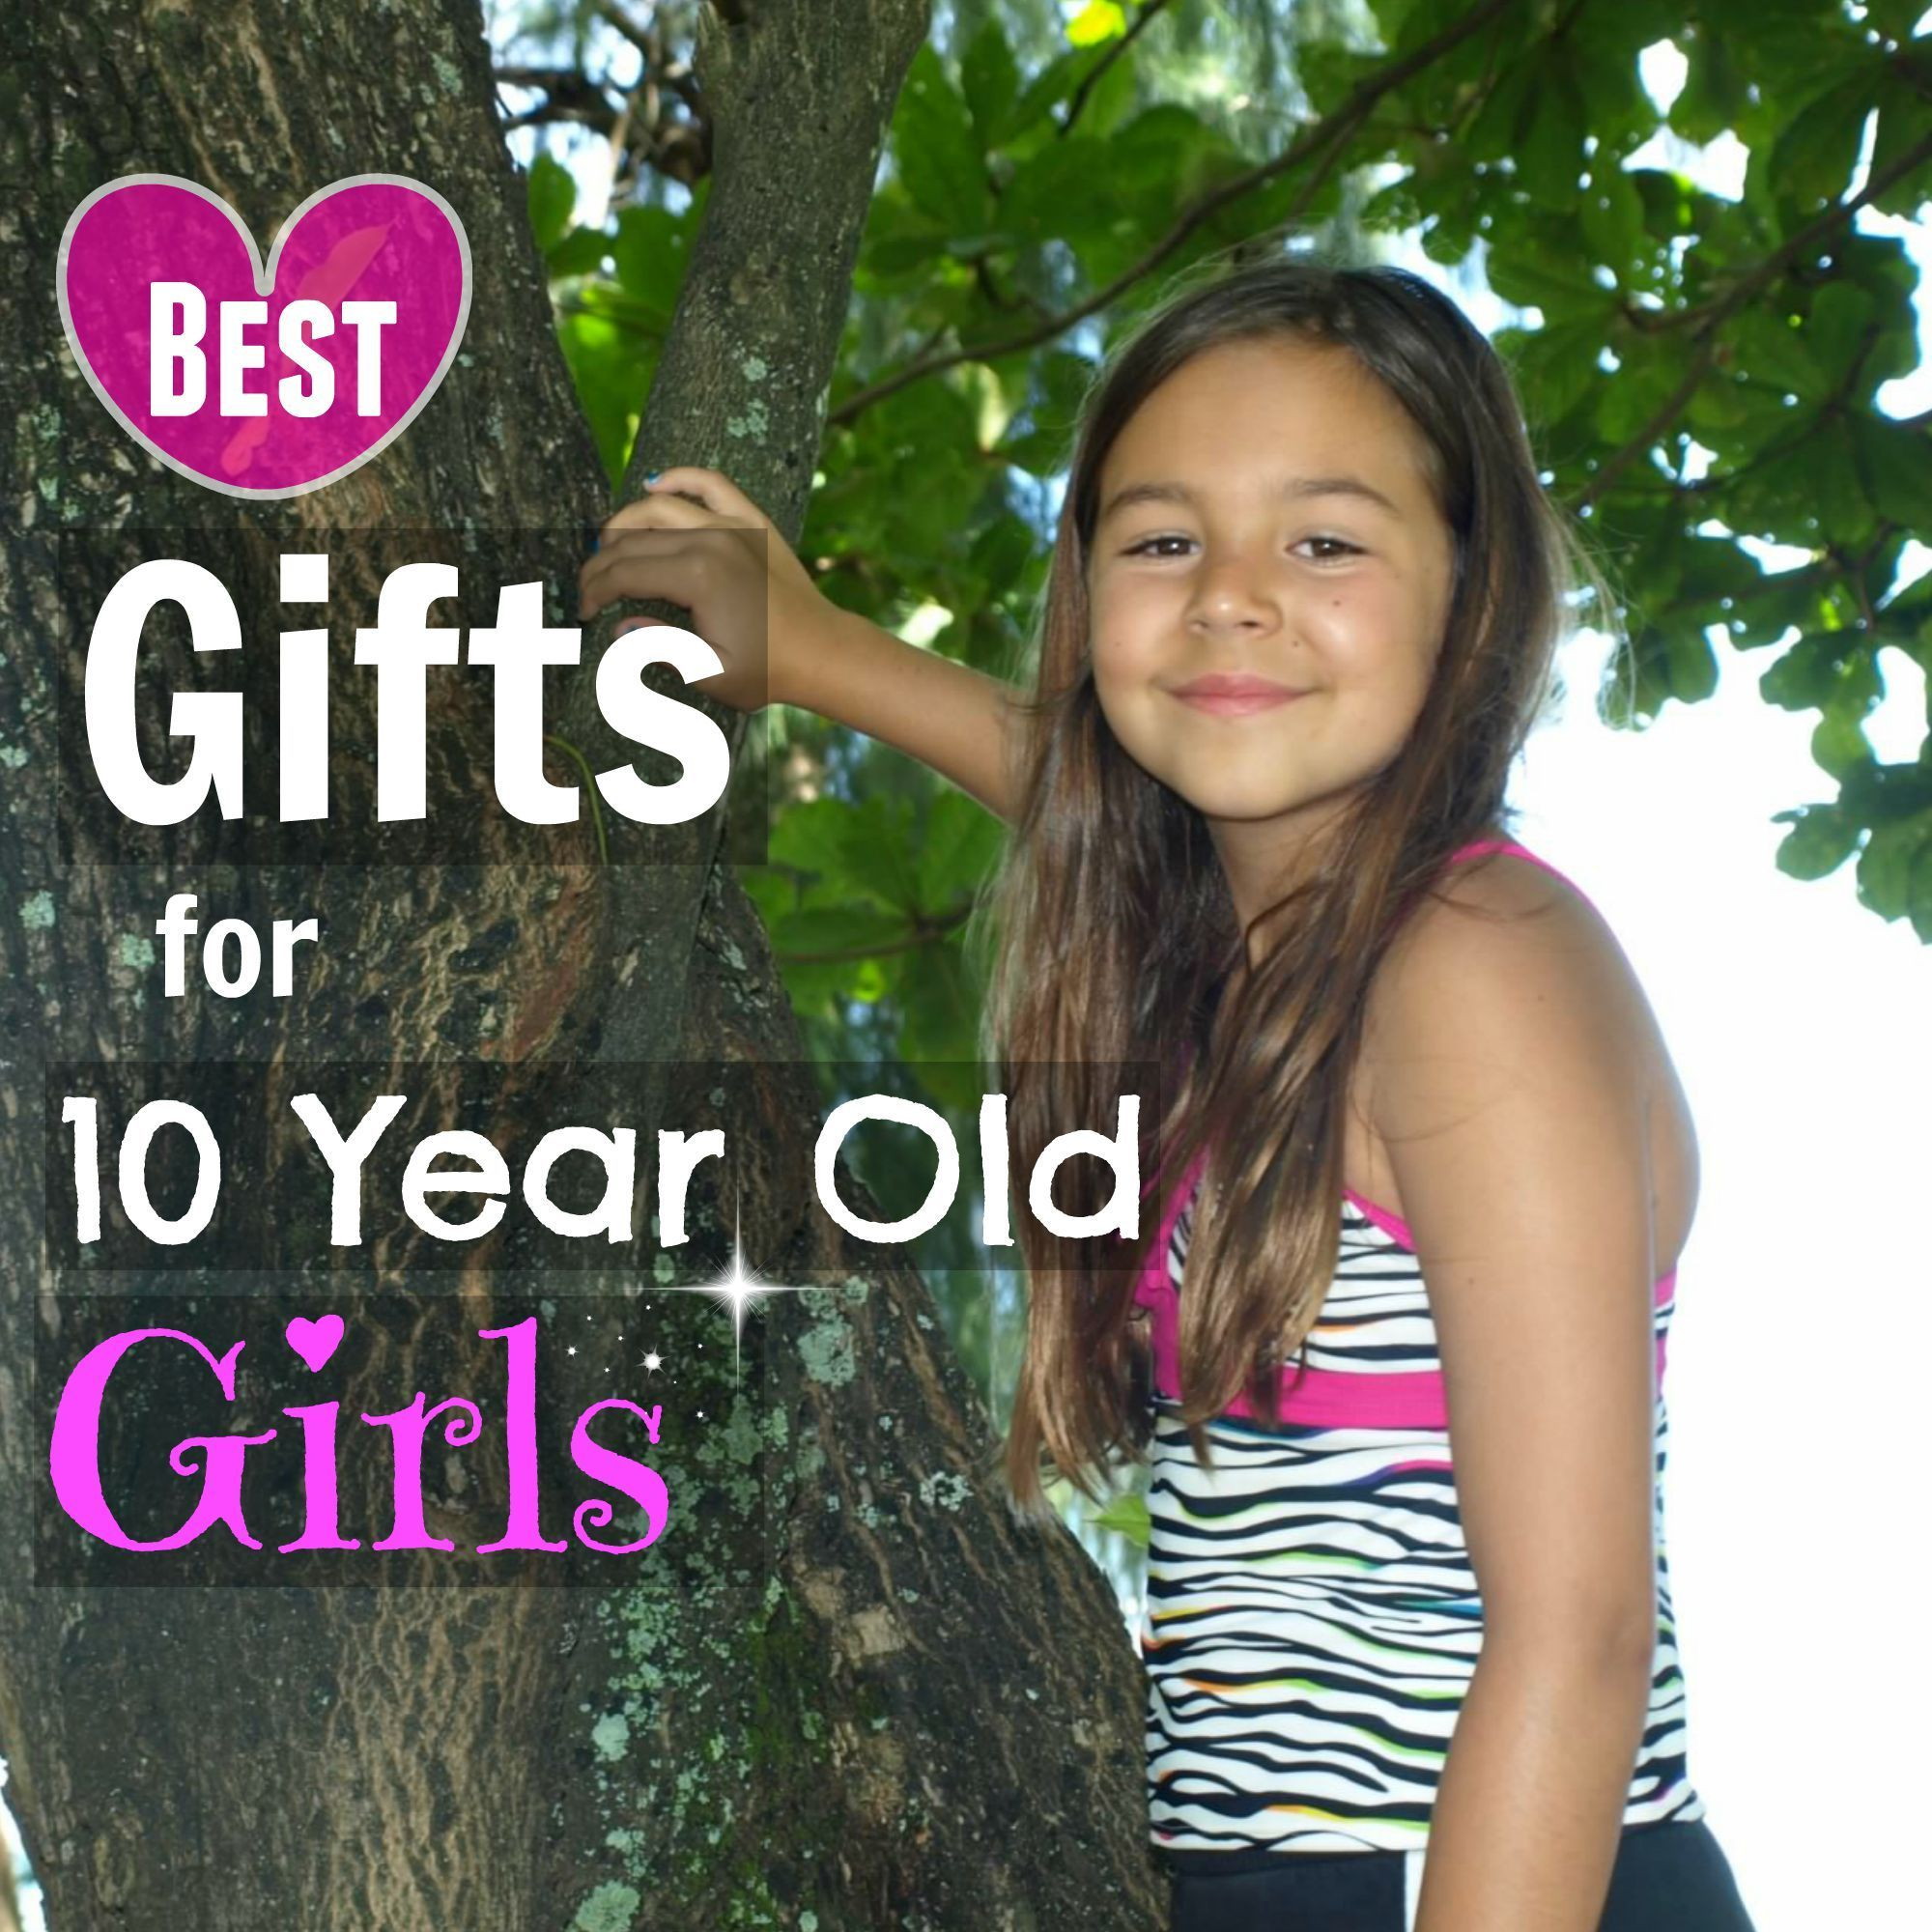 25 Best Gifts For 10 Year Old Girls You Wouldn T Have Thought Of Yourself Must See Guide For 2018 Christmas Gifts For 10 Year Olds 10 Year Old Girl Old Girl